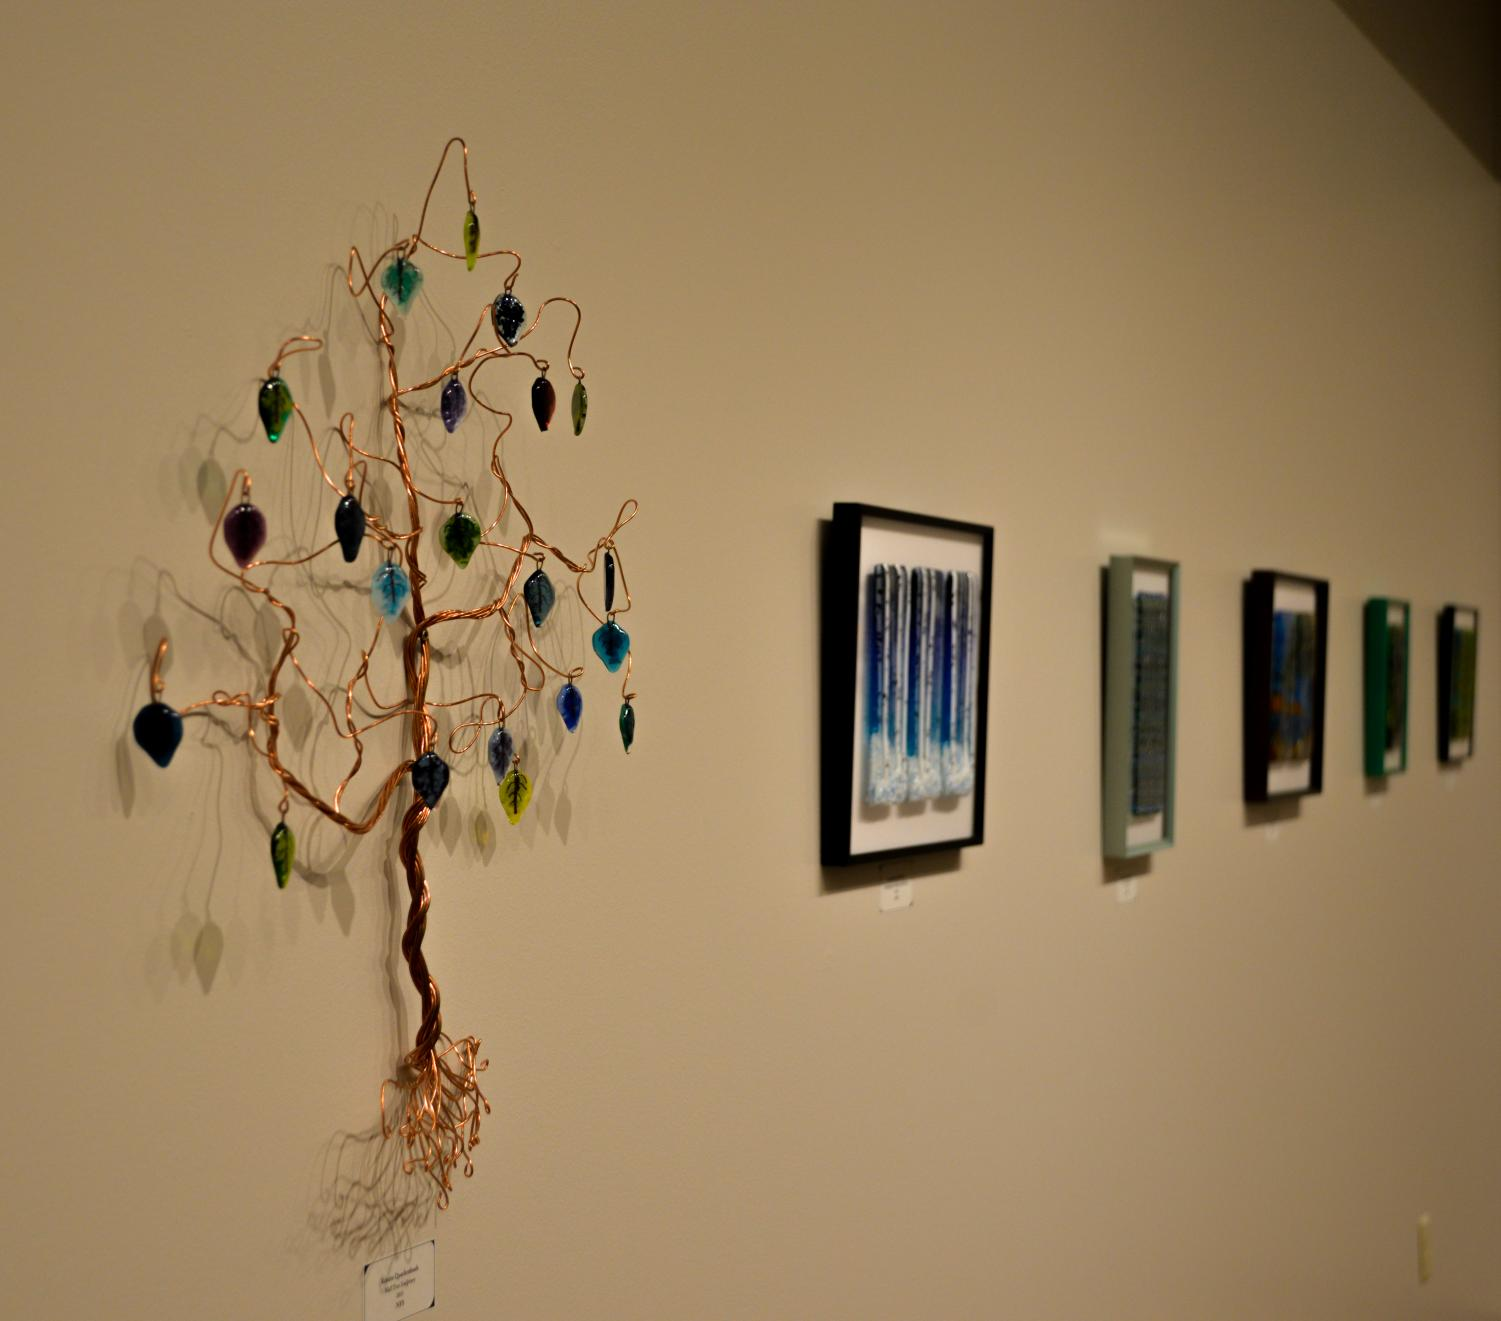 The current exhibit at Roberta's Art Gallery features works by artist Kristin Quackenbush, who  utilizes different colors of broken glass to create visual depth in her pieces.